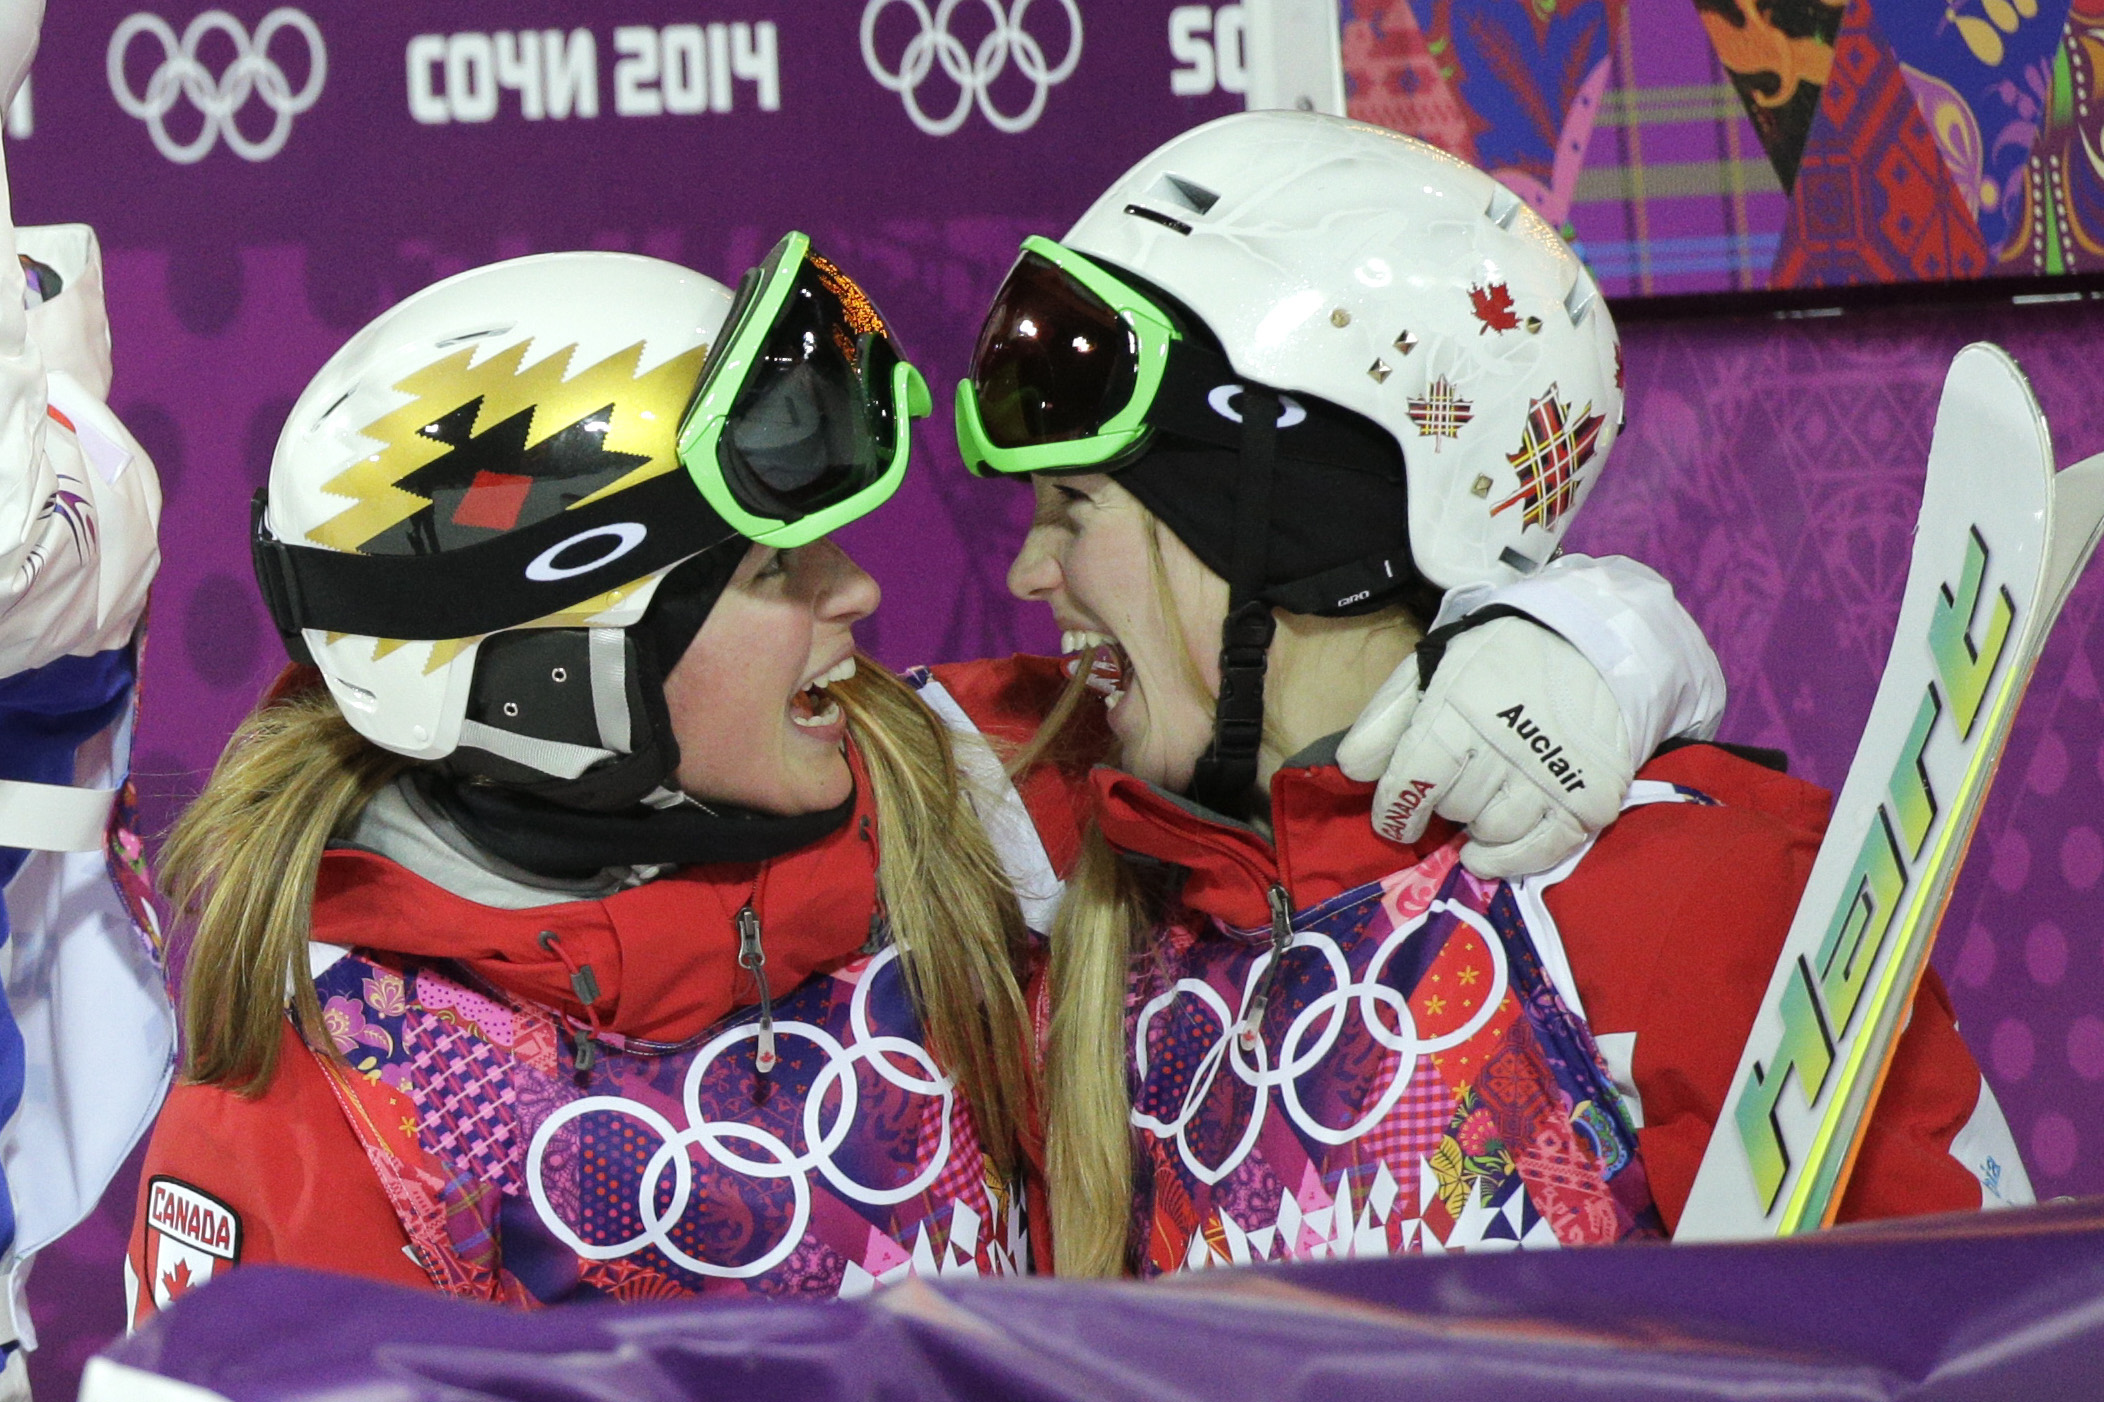 Canada's Justine Dufour-Lapointe, right, is congratulated by her sister, Chloe, after taking first place in the women's moguls final at the 2014 Winter Olympics, Saturday, Feb. 8, 2014, in Krasnaya Polyana, Russia. Justine won the gold medal and Chloe took the silver. (AP Photo/Jae C. Hong)